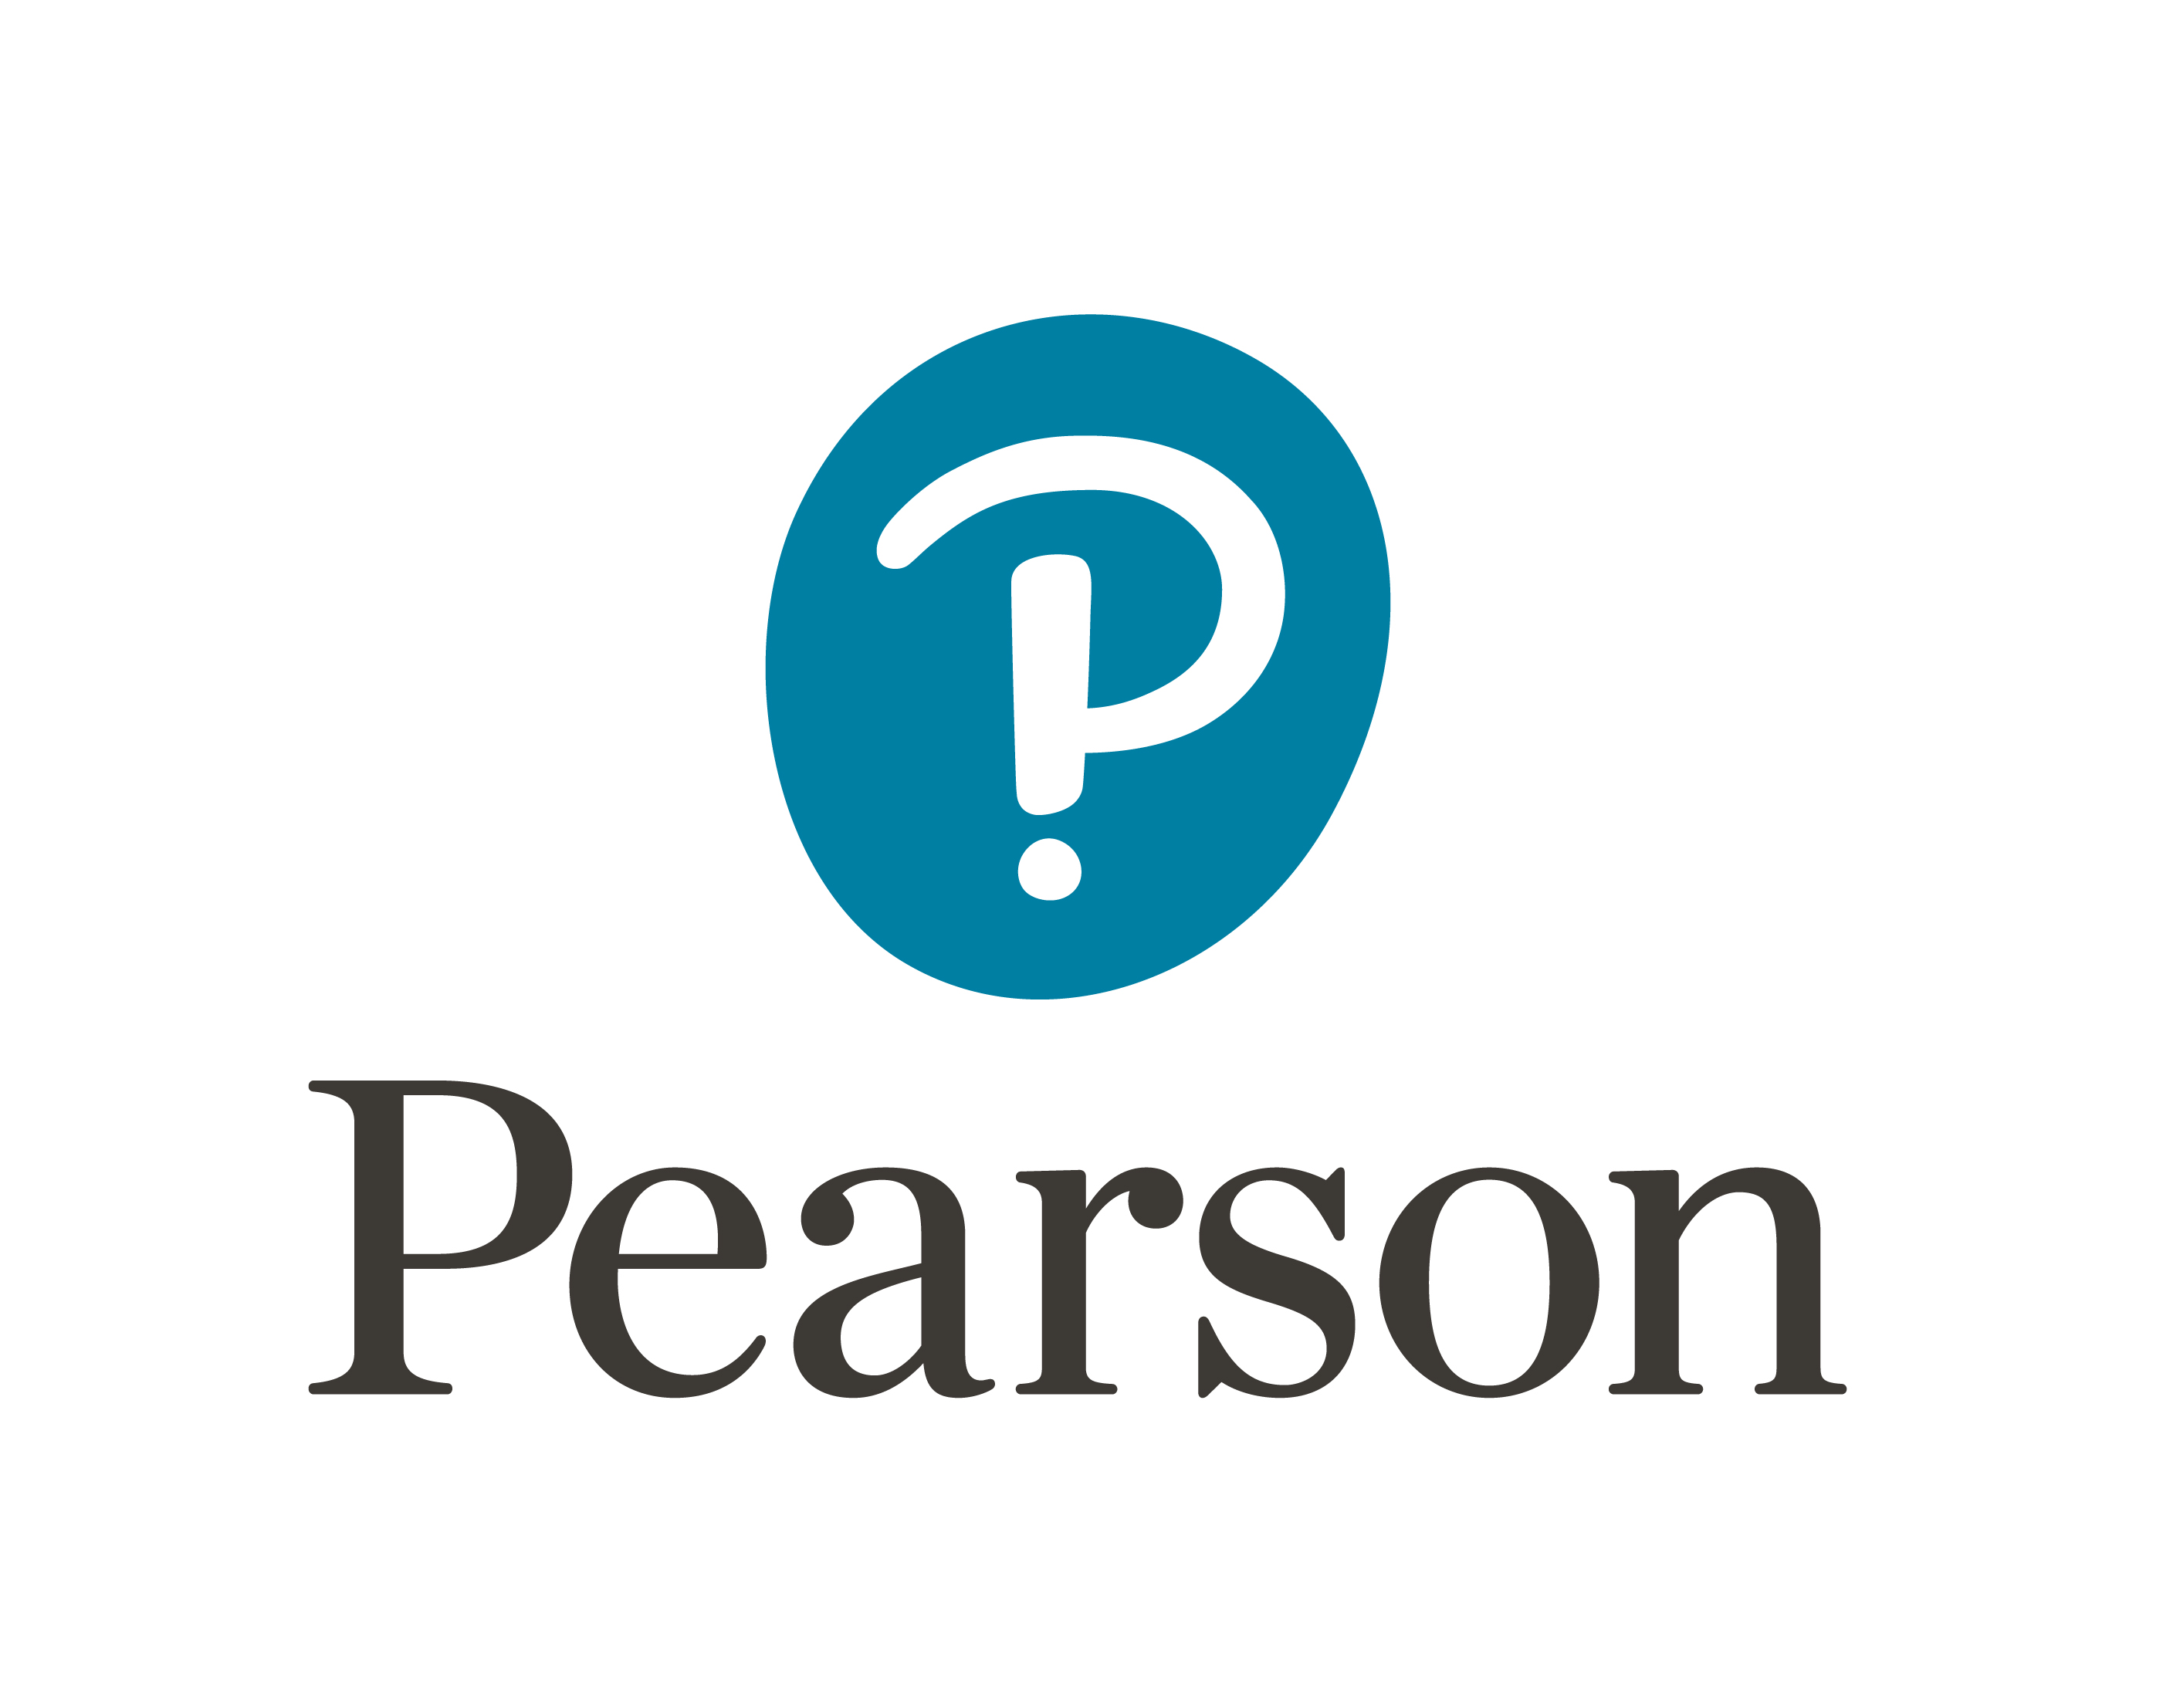 Pearson Team leader Supervisor Portfolio Template Issue 1